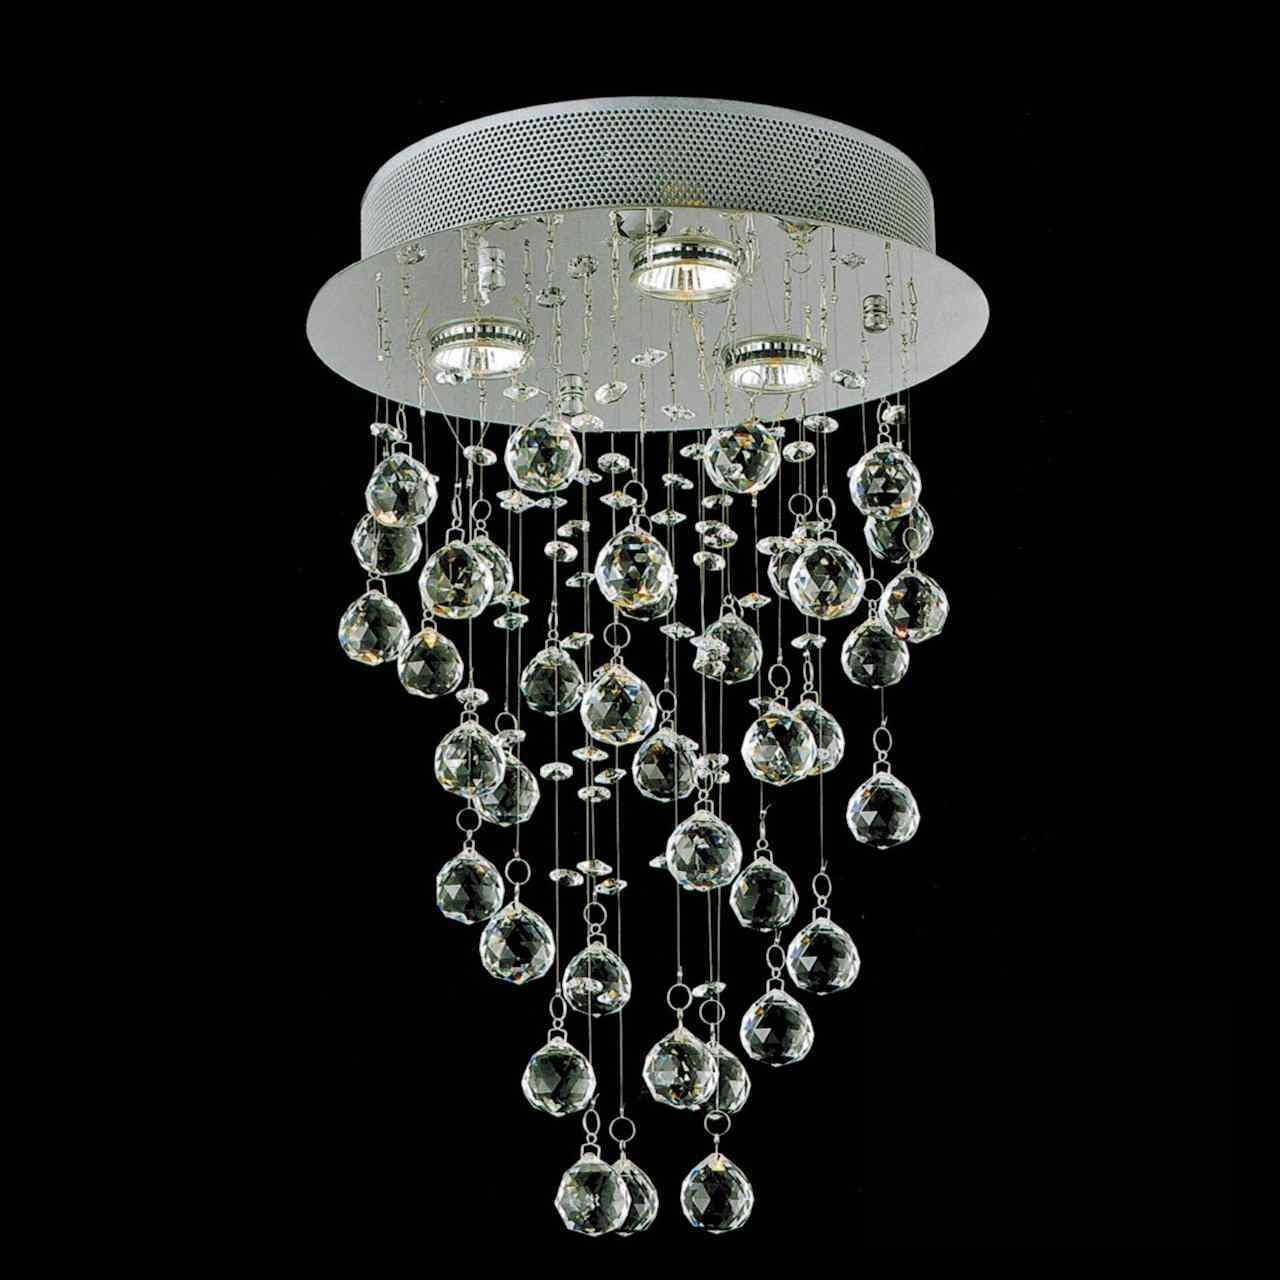 Brizzo Lighting Stores 18 Raindrops Modern Foyer Crystal Round For Chandelier Mirror (Image 2 of 15)